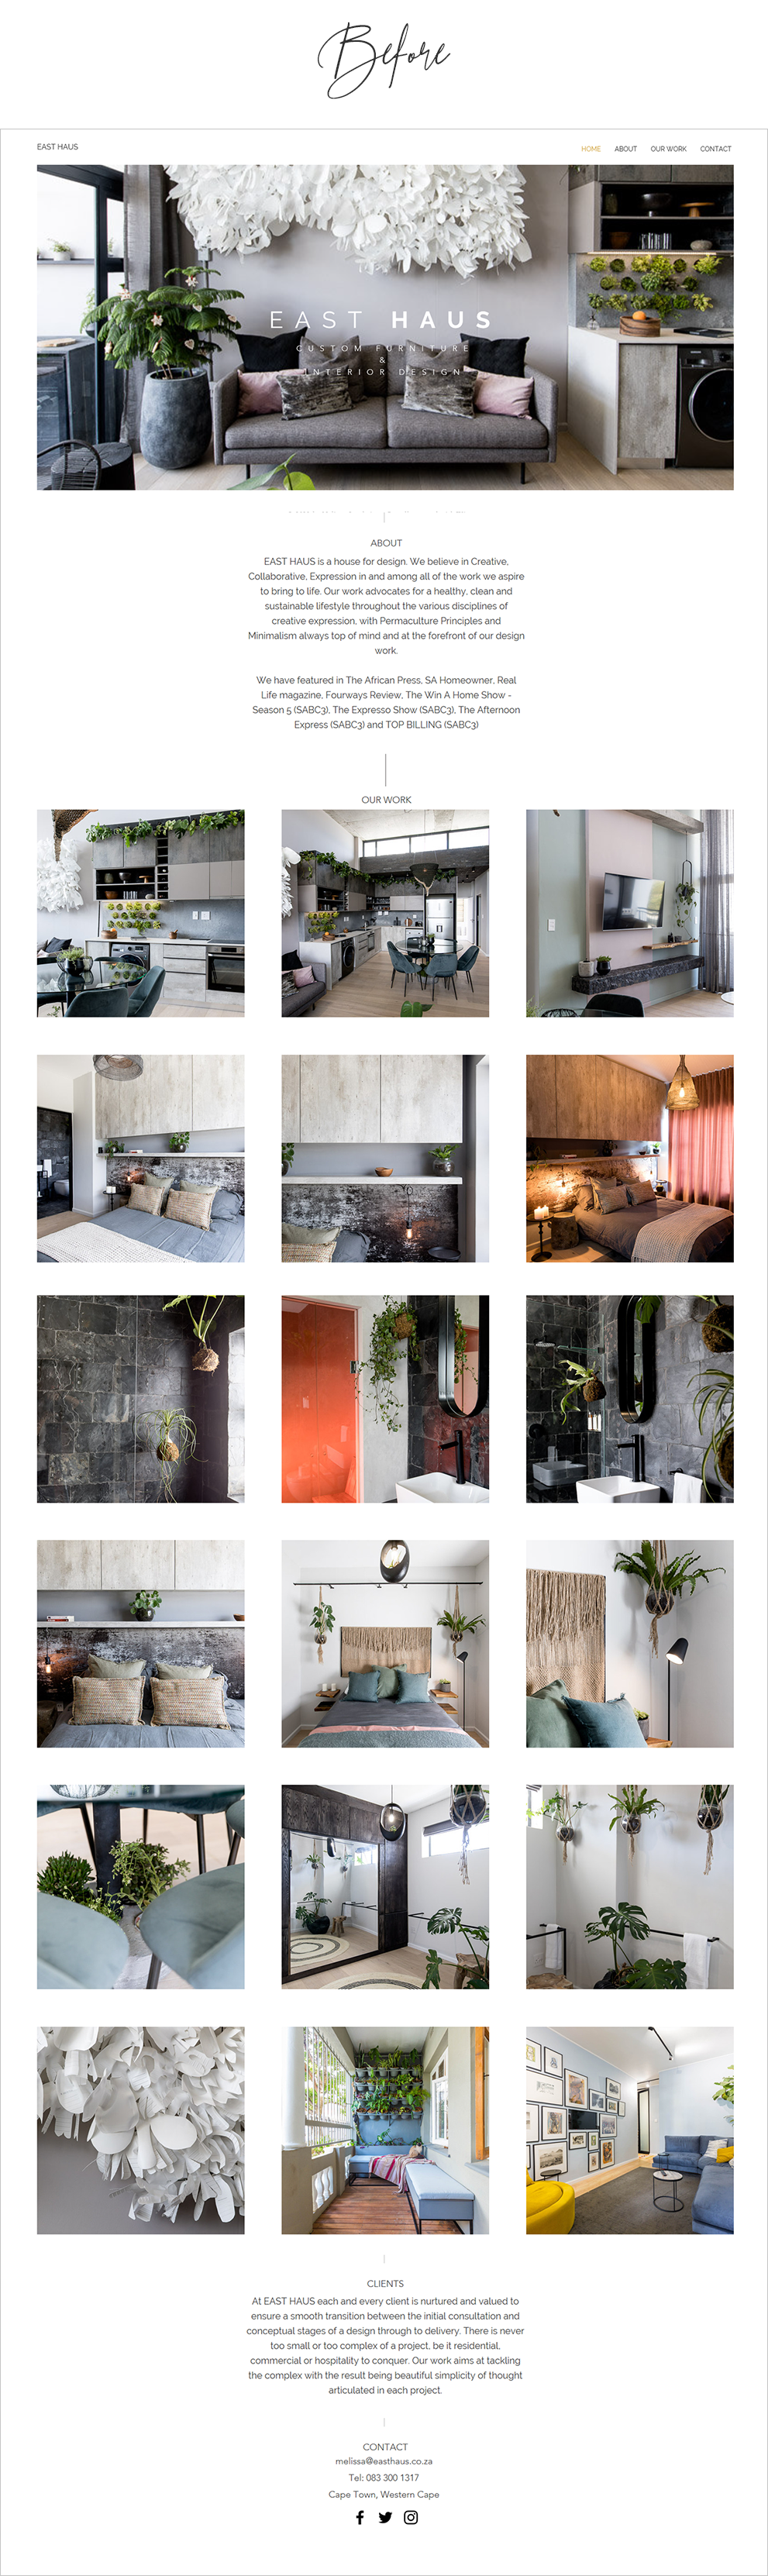 Before and After Website Redesigns - East Haus